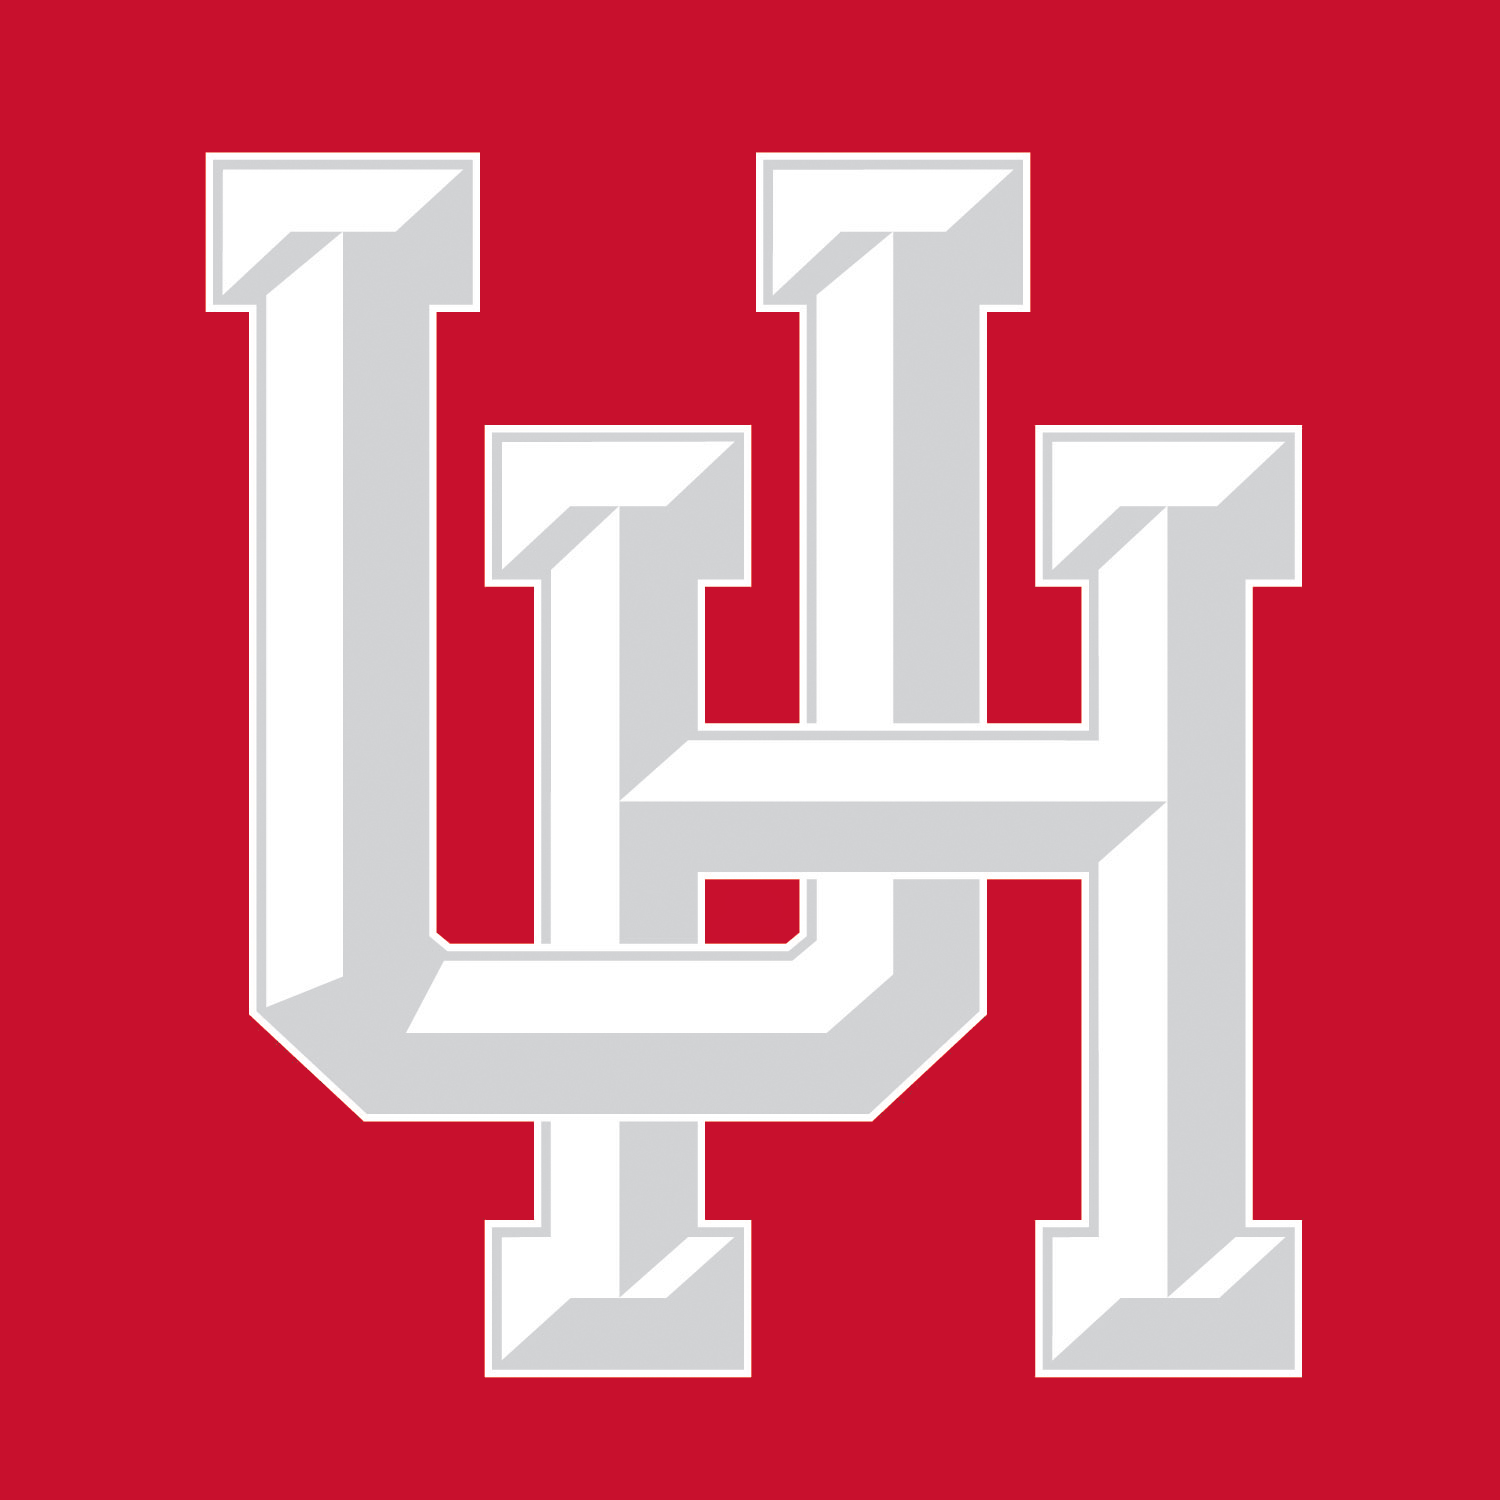 university of houston online dating Free online cougar dating site for women looking to date younger men in houston, tx at register now, use it for free for speed datingi burnt the letter in the flame of the spirits, beneath the light of the moonwe must go to the bottom of this hellish plot to injure graustark.